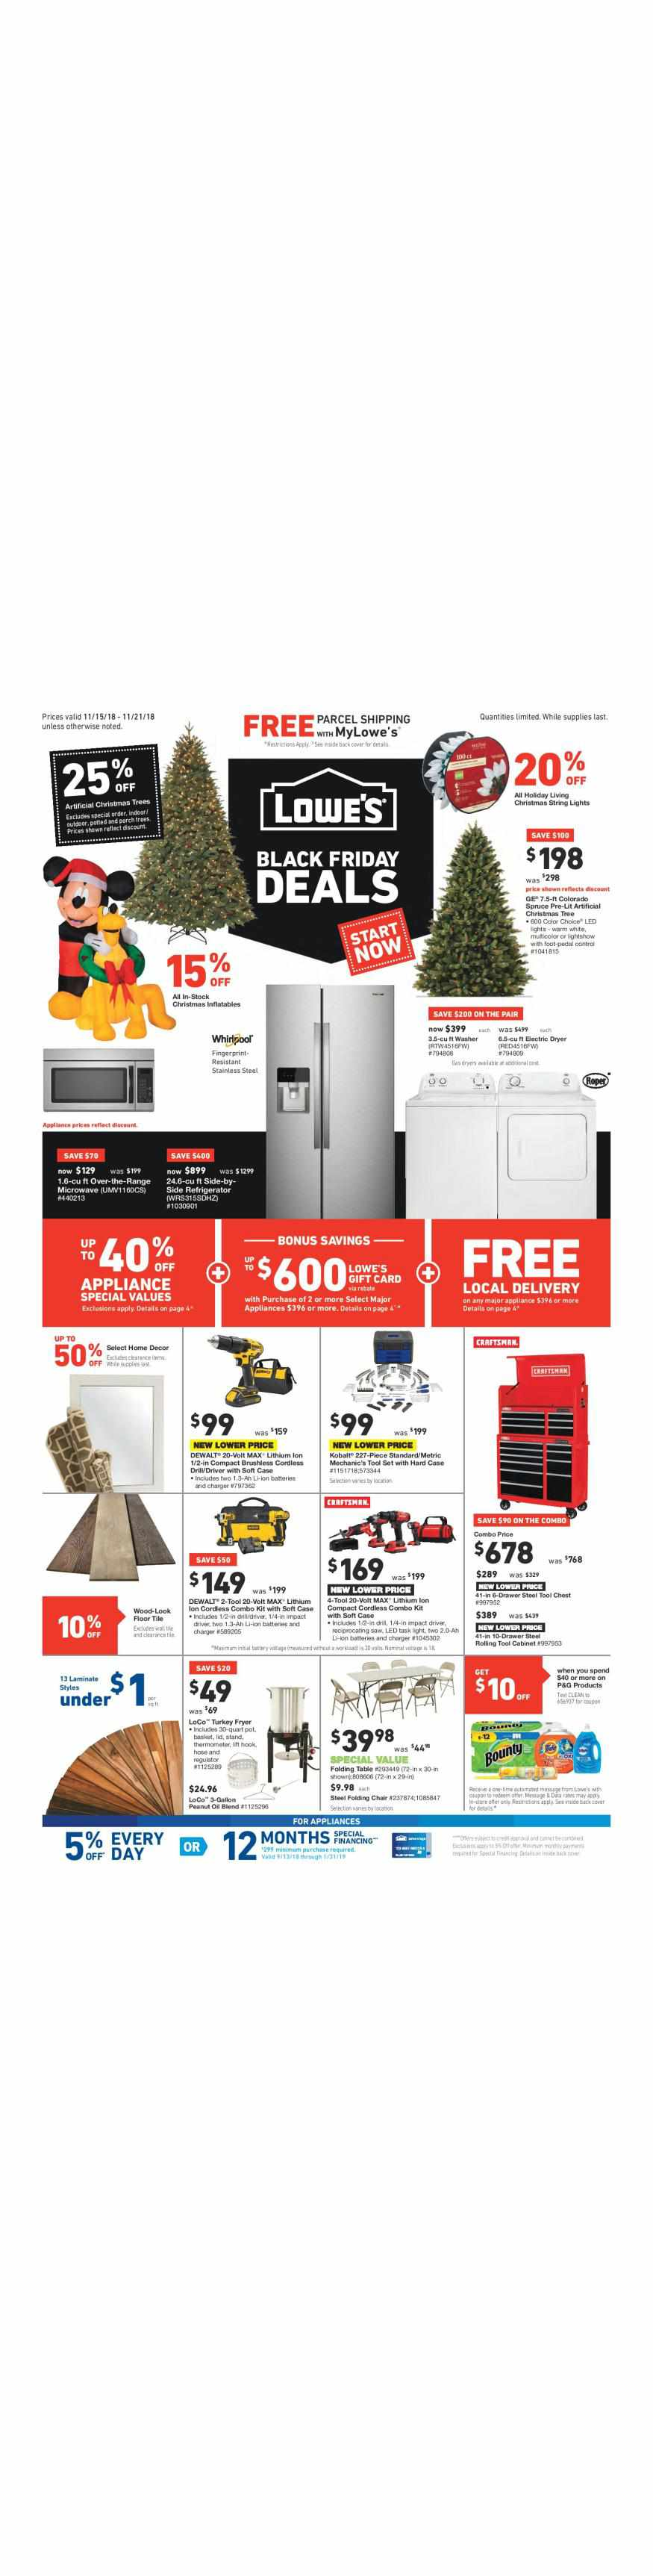 Lowe's weekly ad for 20/09/2021-26/09/2021